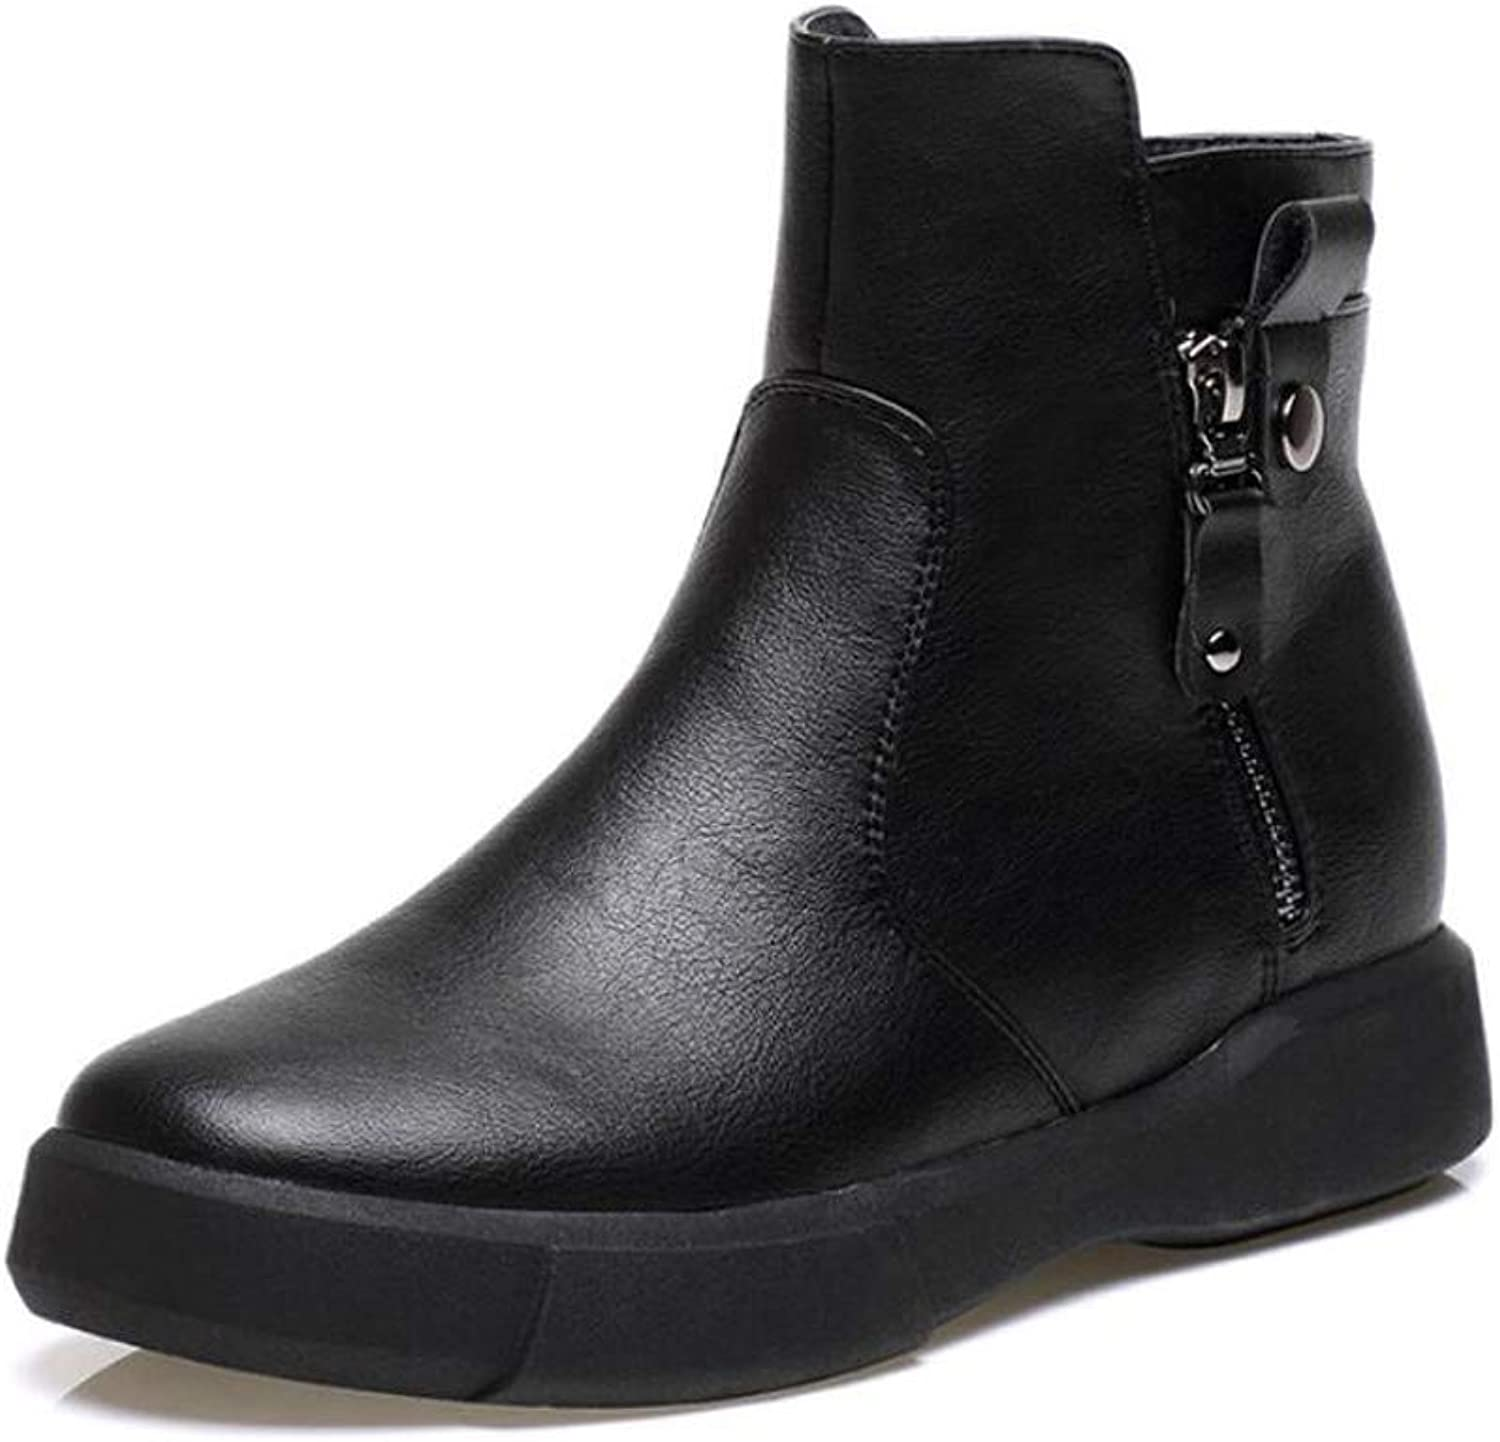 DANDANJIE Woemns Martin Boots British Retro Flat Boots Student Casual Boots Autumn